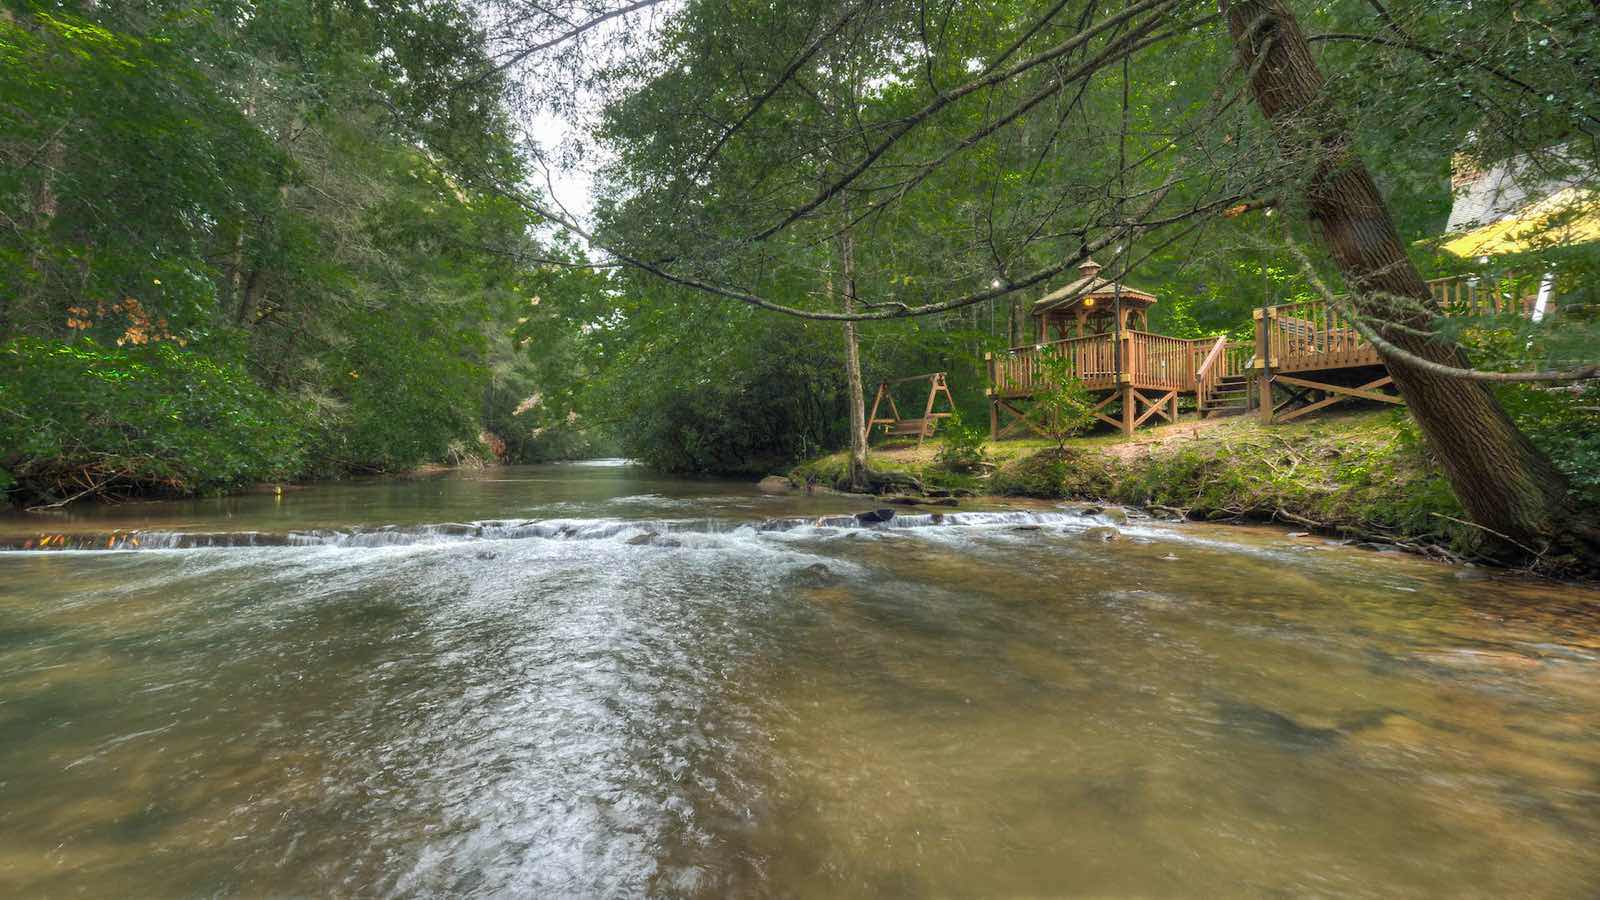 website rent georgia for ridge endless view cabins in blue lodge rentals cabin ga cabinrentals